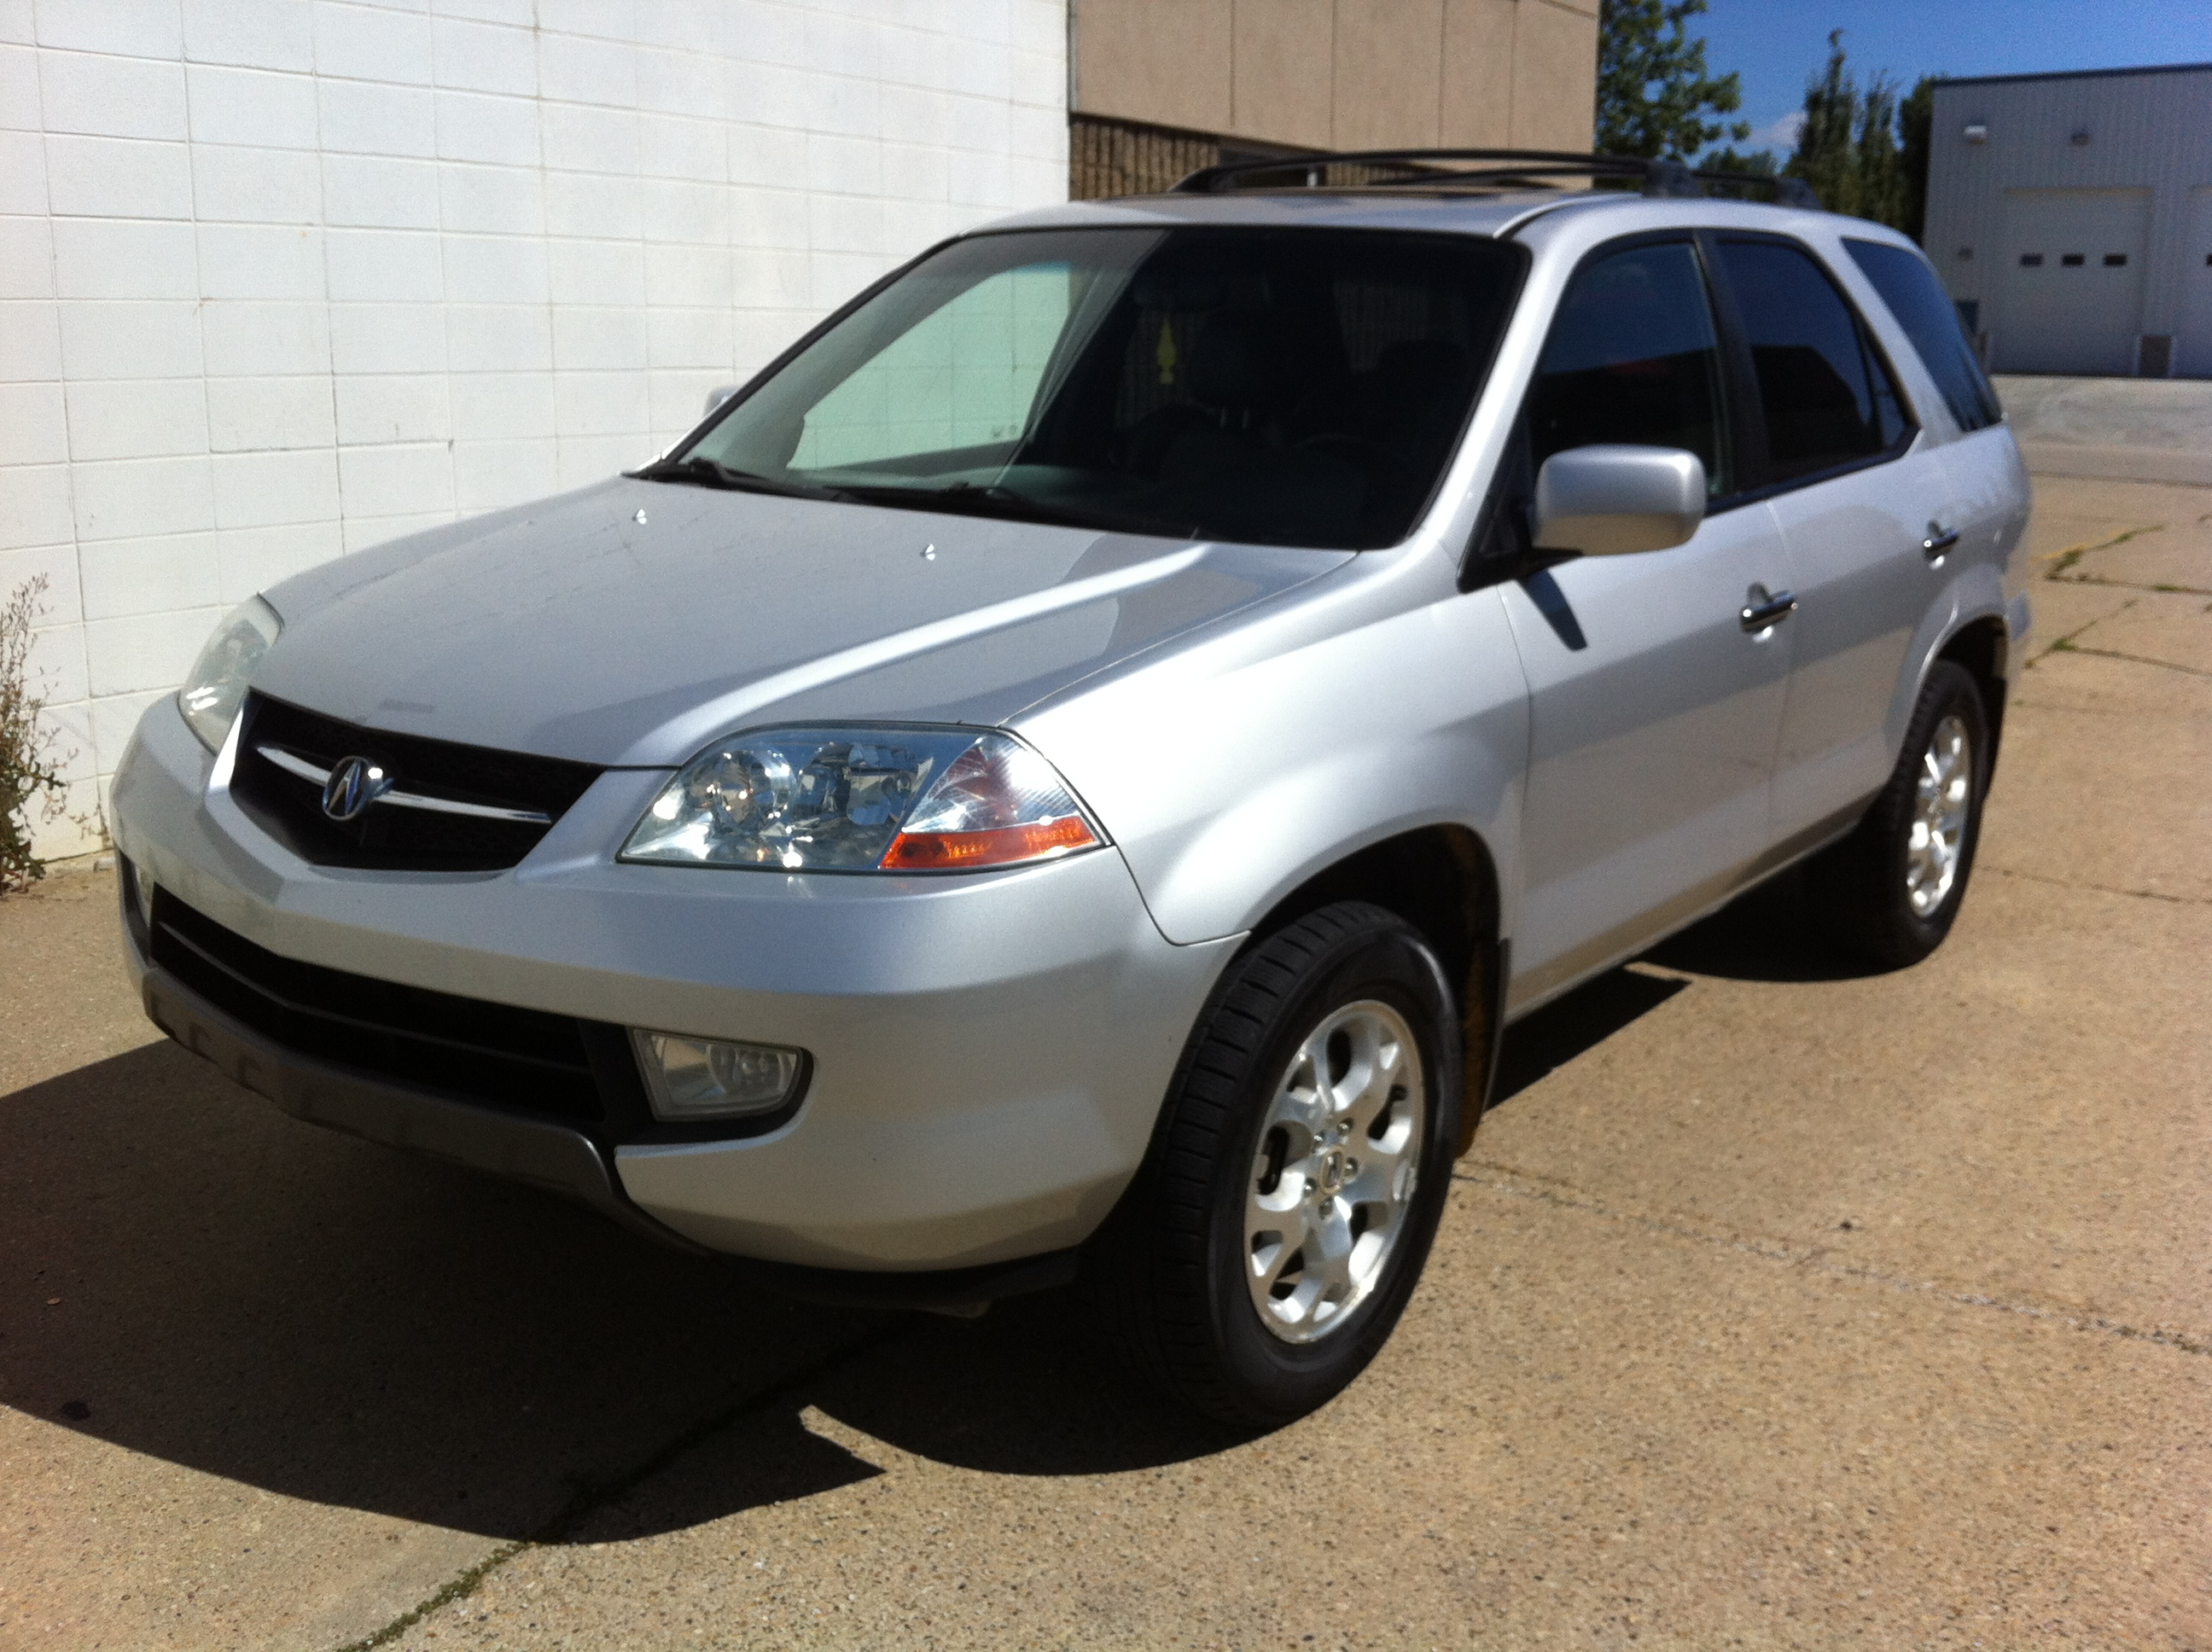 with ideas of lovely mdx best cars touring over acura suv on as hd design chosen new affordable